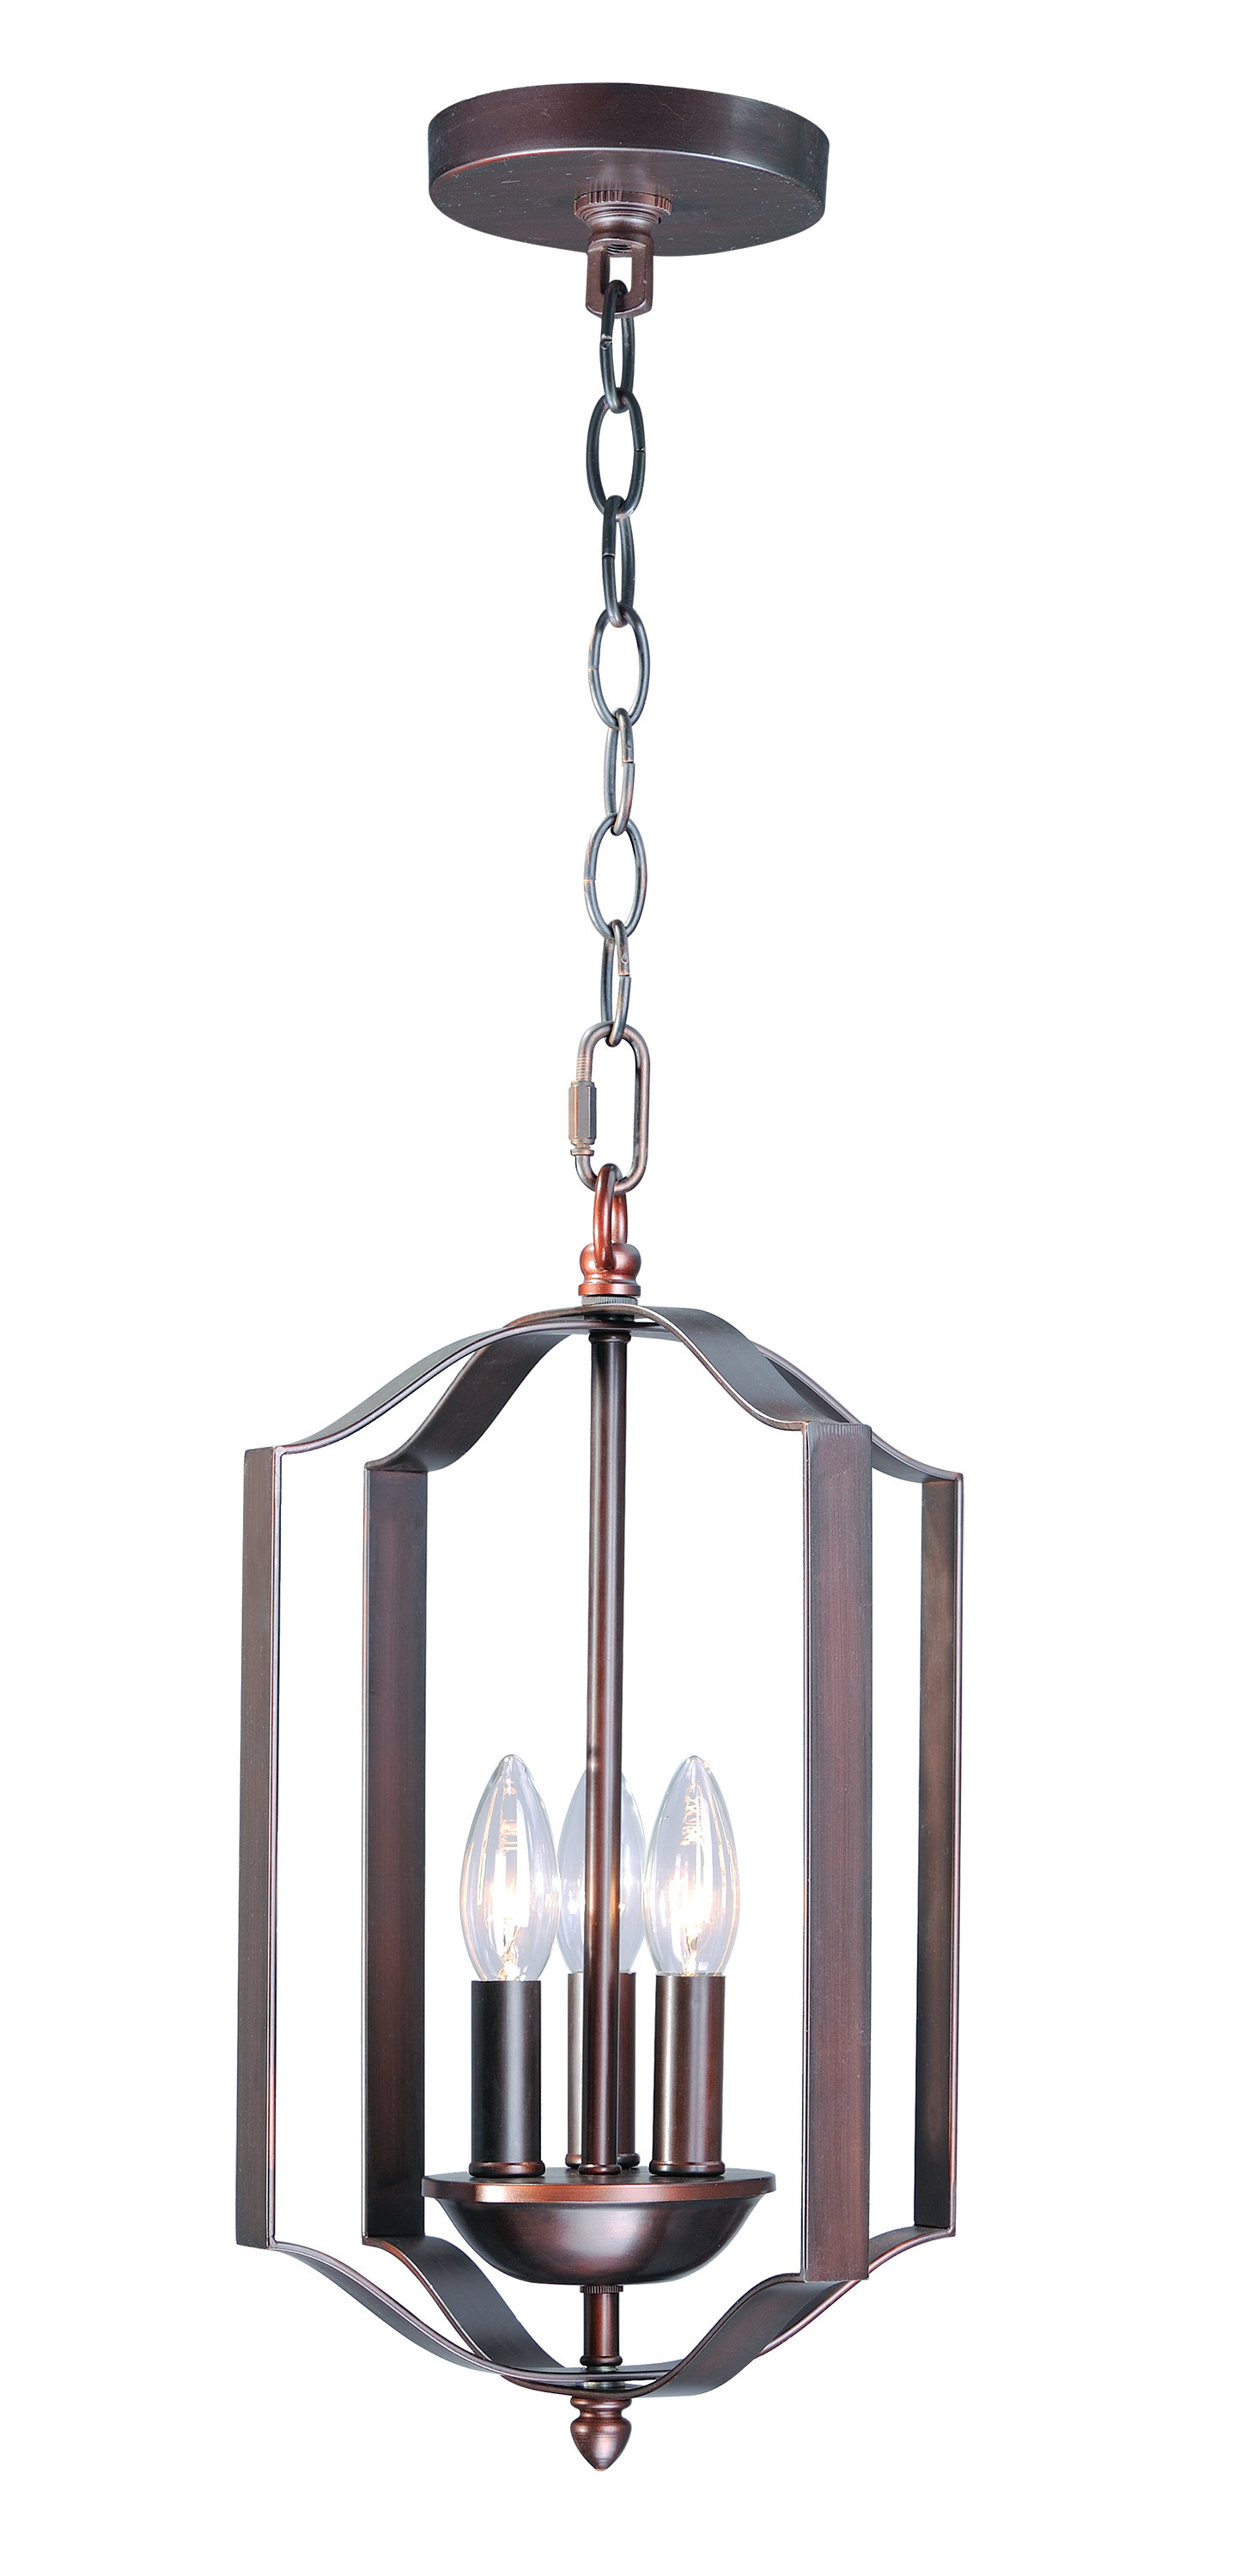 Mielke 3-Light Lantern Pendent regarding Chauvin 3-Light Lantern Geometric Pendants (Image 23 of 30)